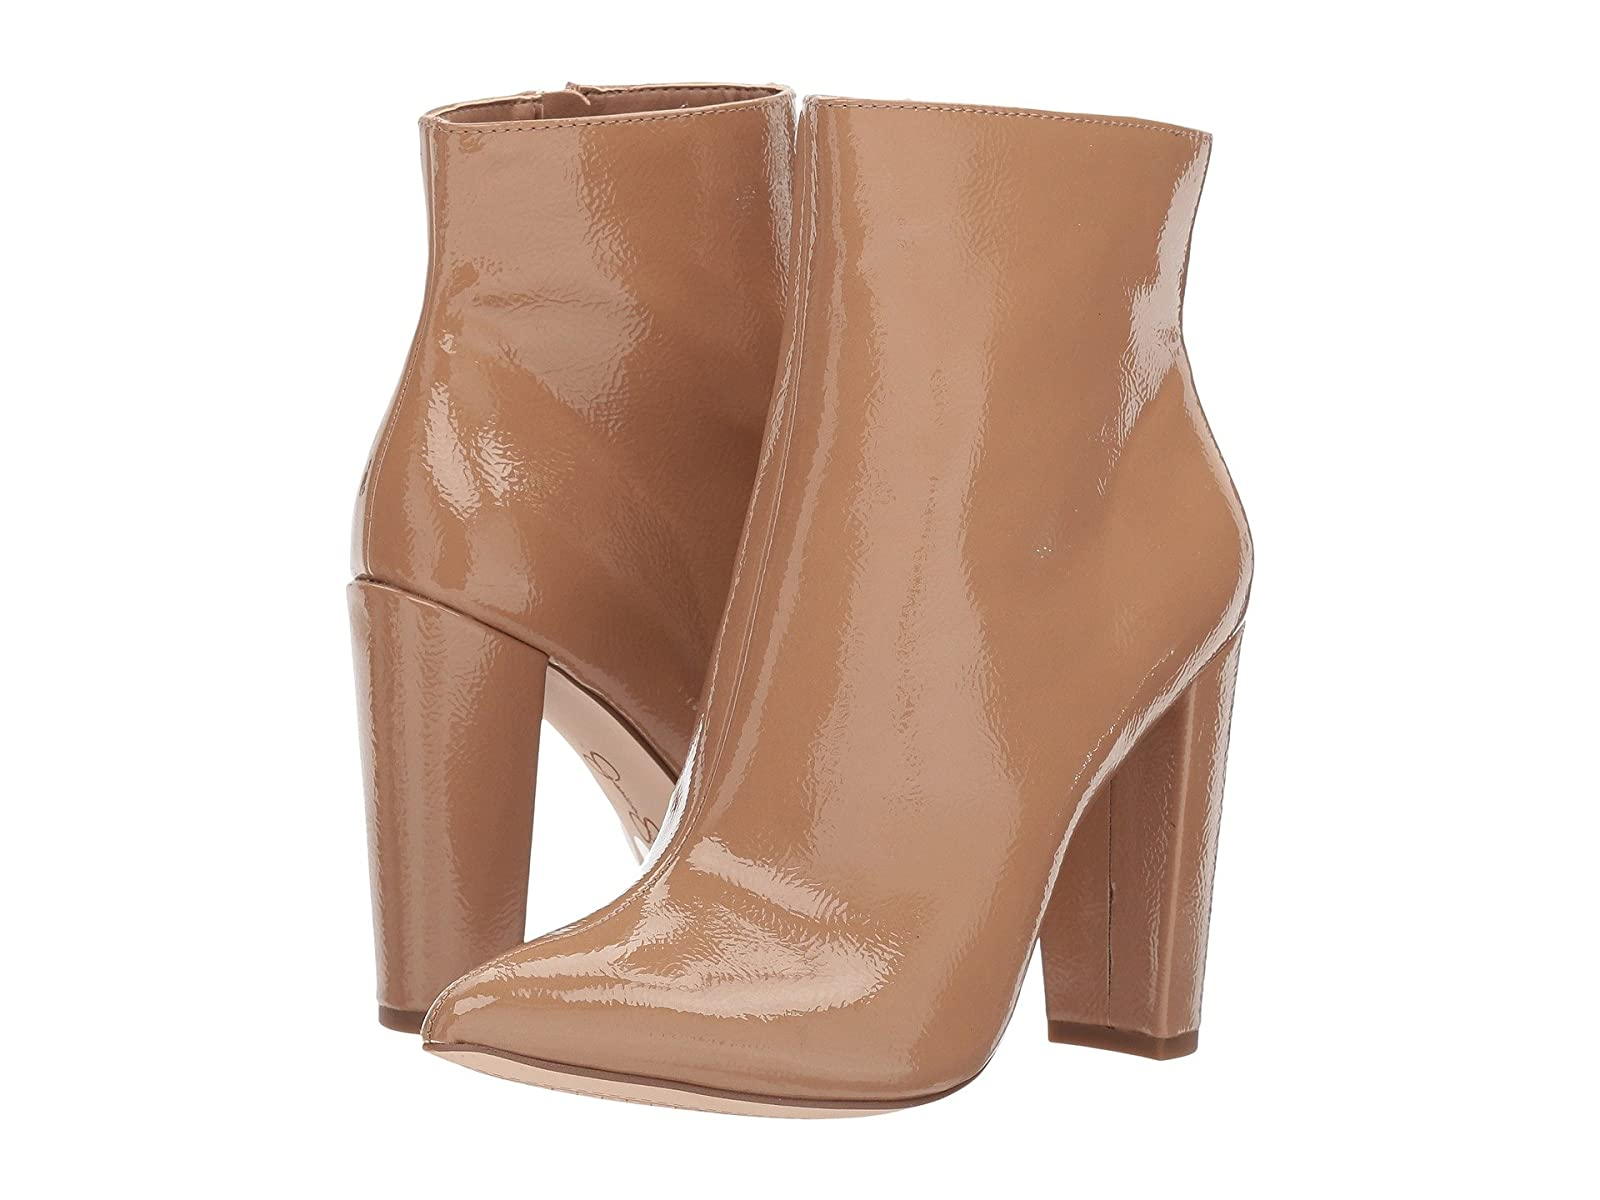 Jessica Simpson TeddiCheap and distinctive eye-catching shoes